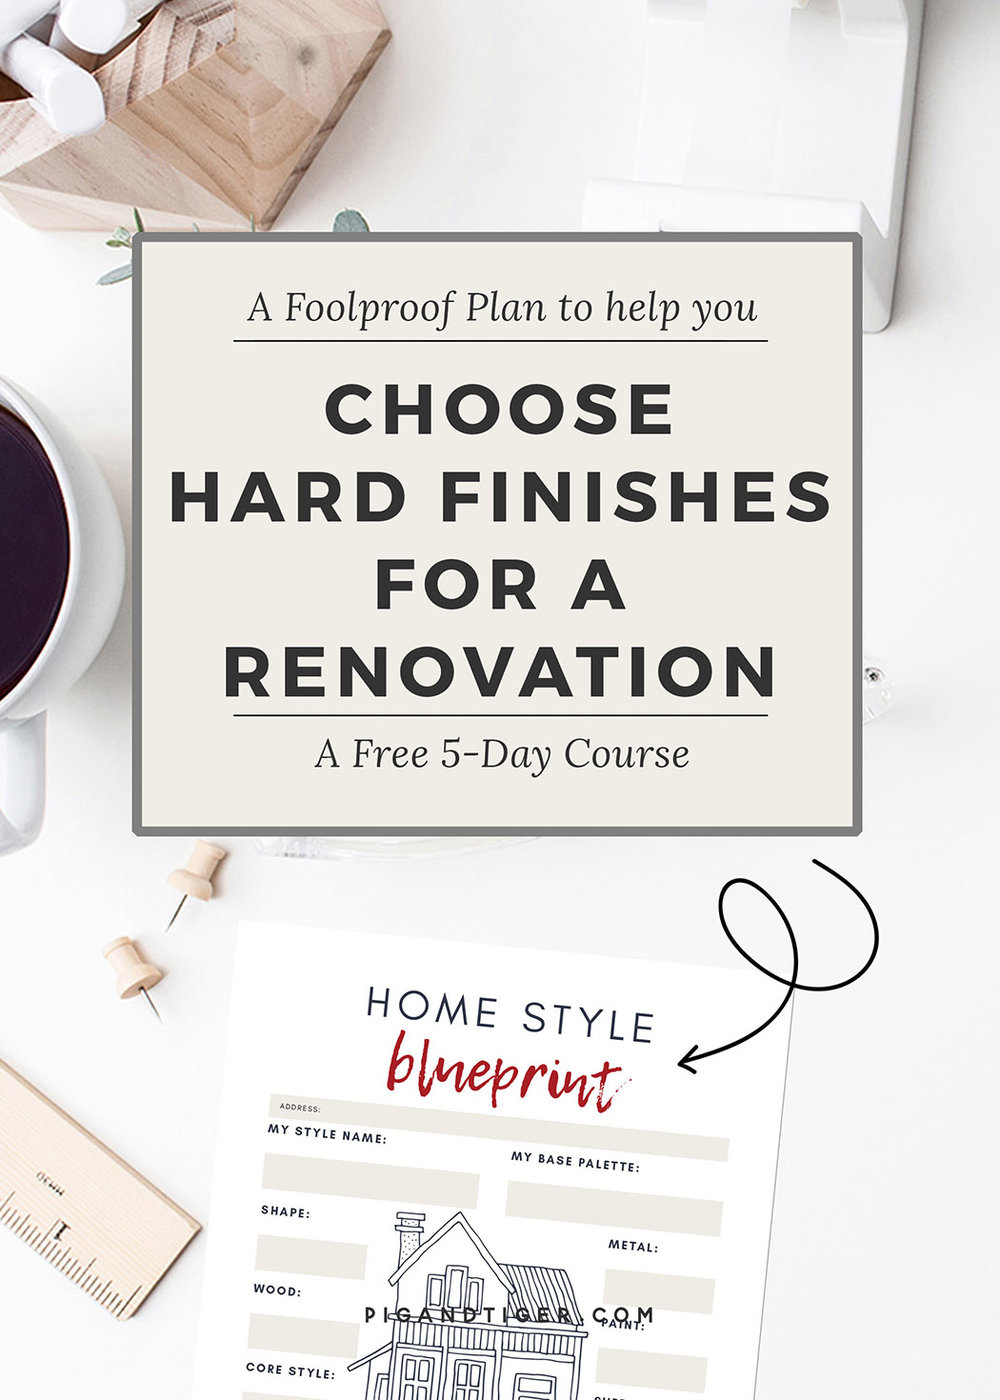 REMODEL HELP - A Foolproof Plan to help you choose hard finishes for a renovation. FREE 5-day course. Click for more